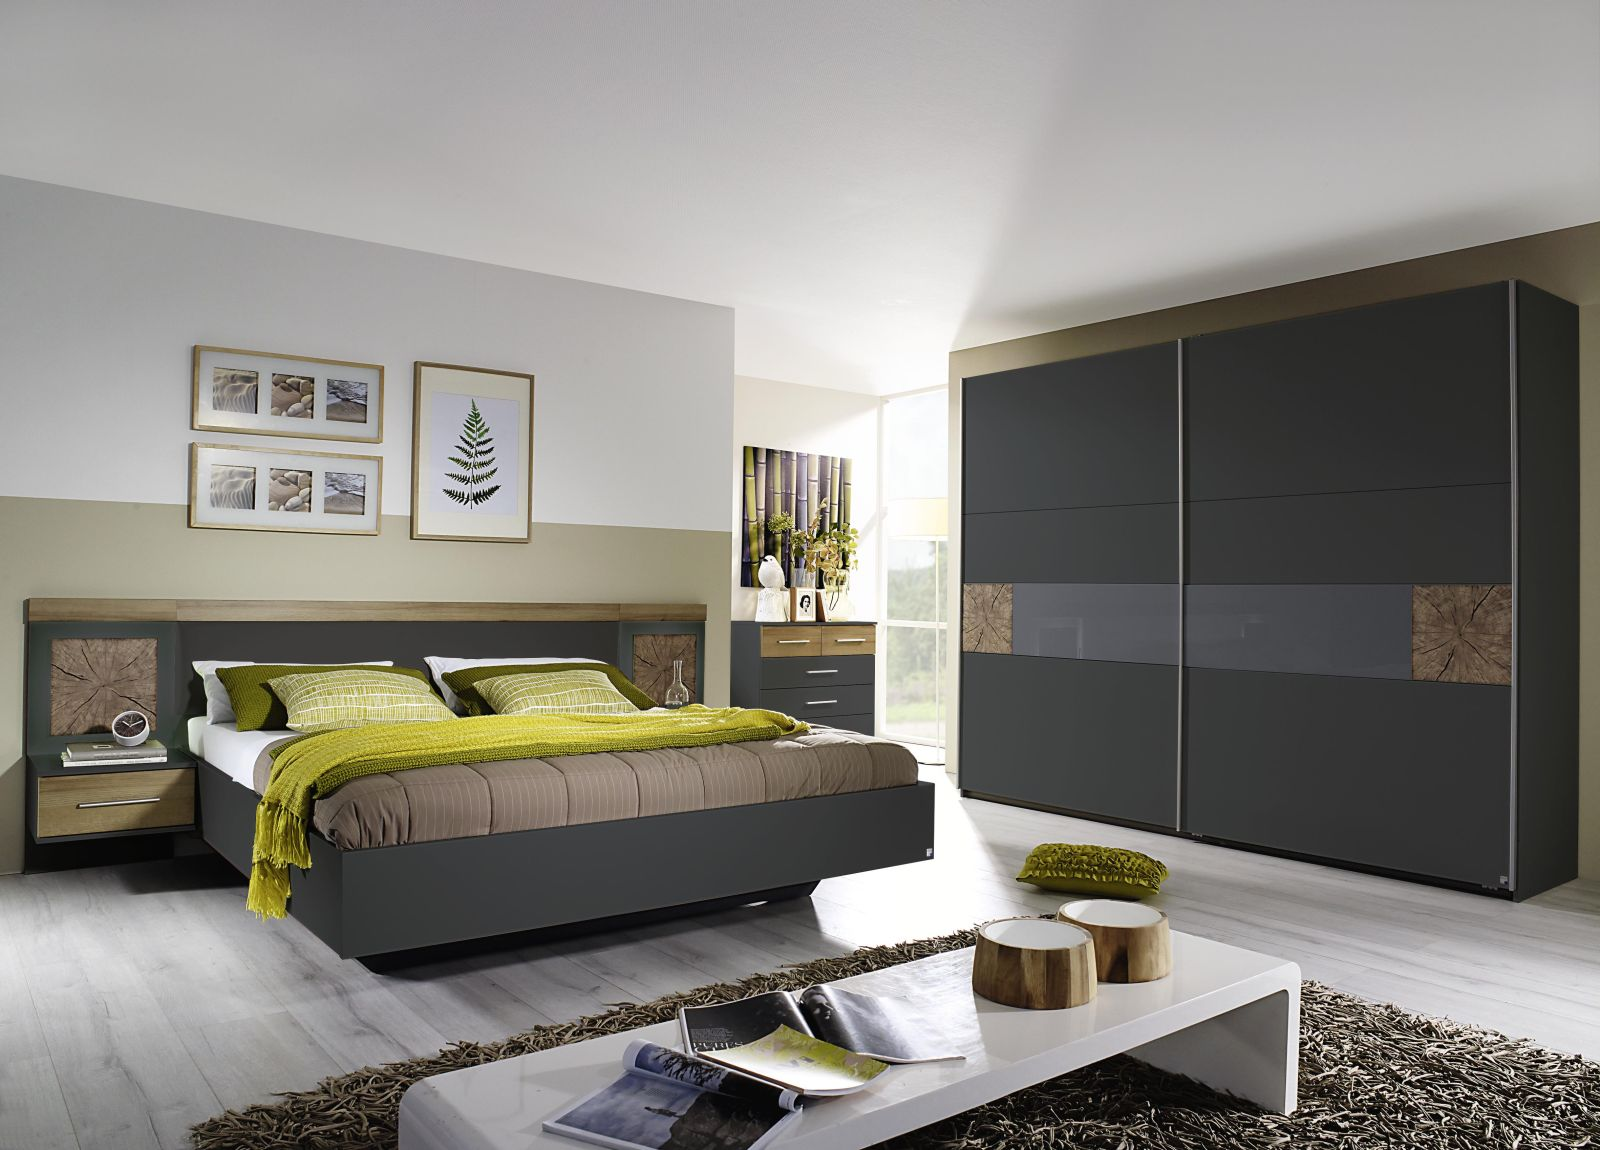 schlafzimmer kirchberg komplettzimmer schlafzimmer. Black Bedroom Furniture Sets. Home Design Ideas